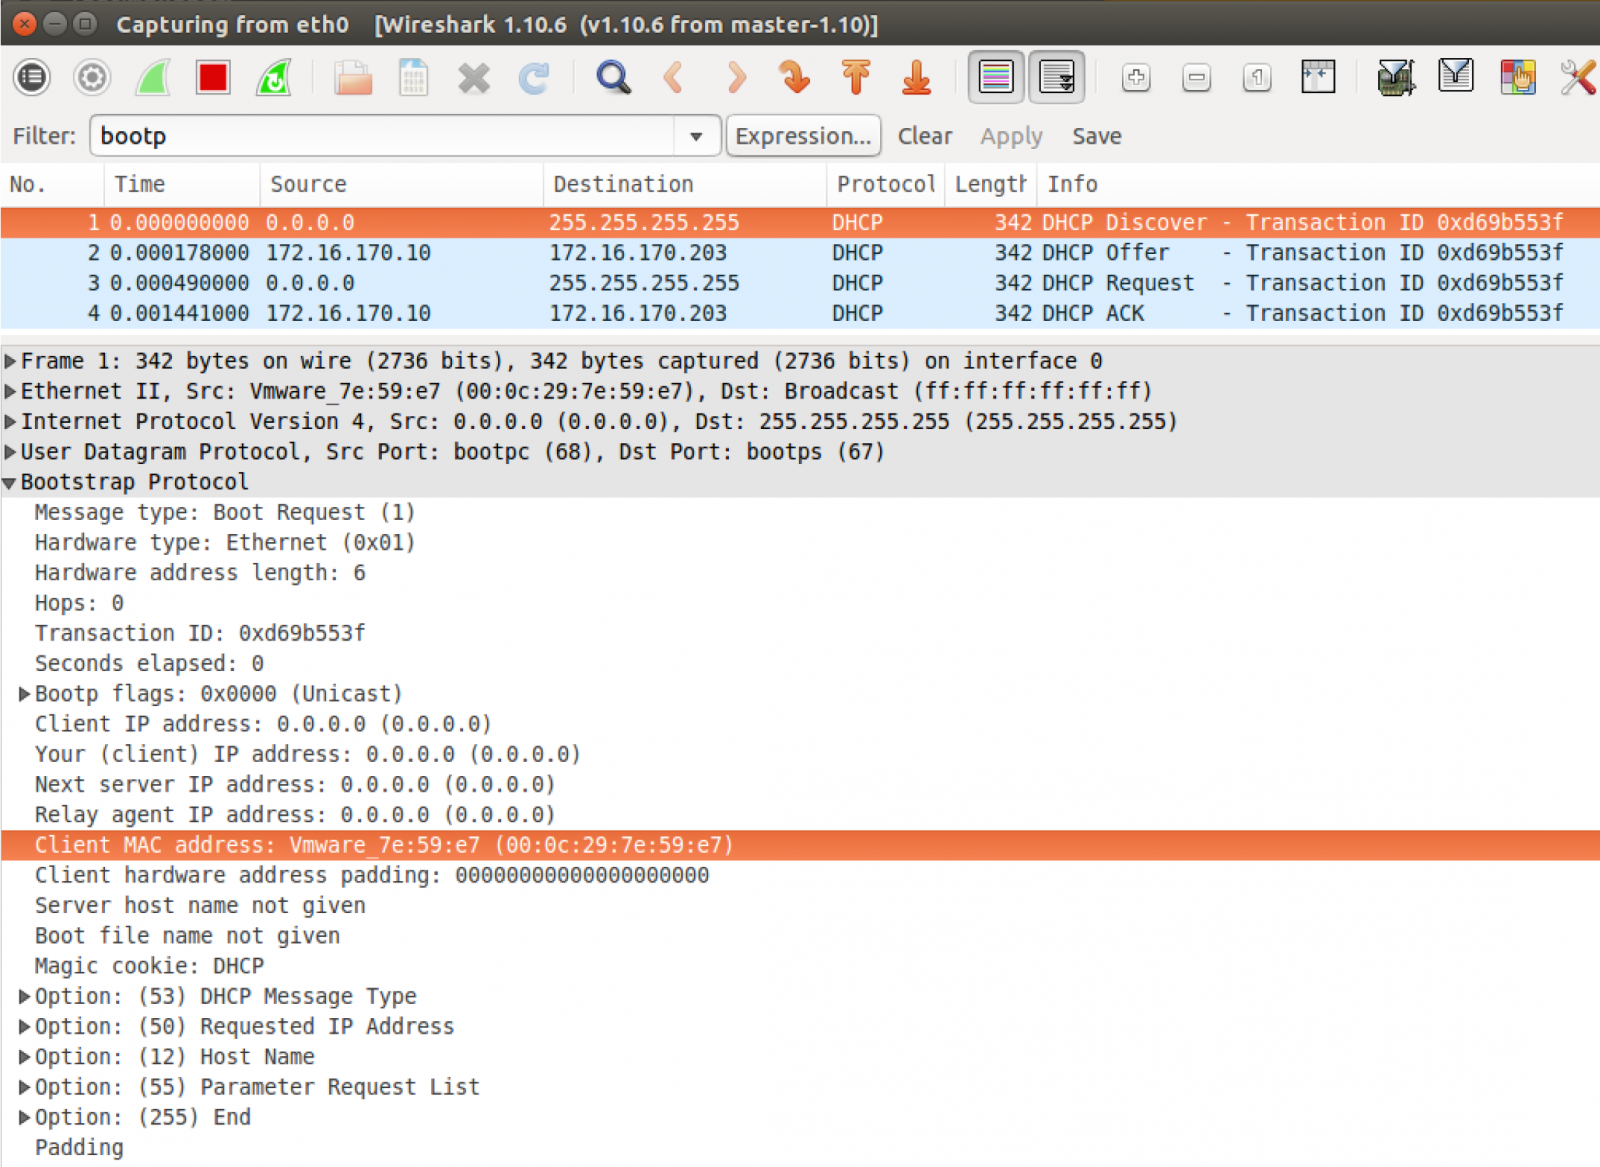 Figure 1: DHCP Discover packet with included Client MAC address highlighted